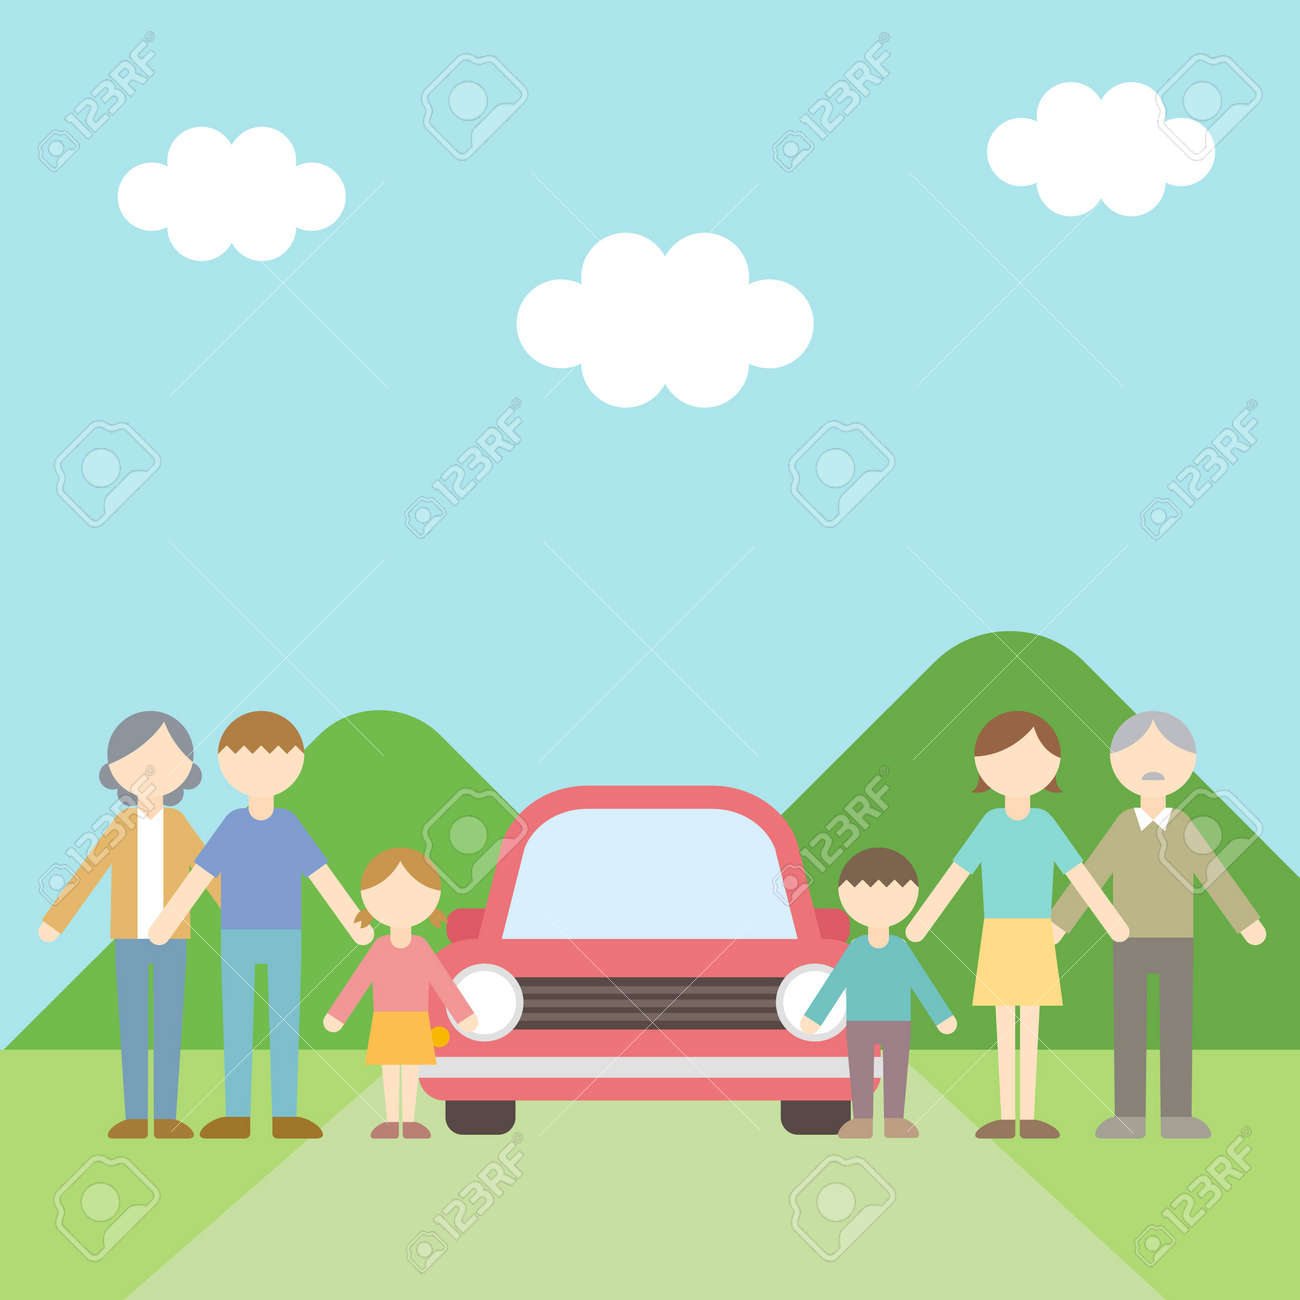 Flat Icon Person Family Drive - 168585555